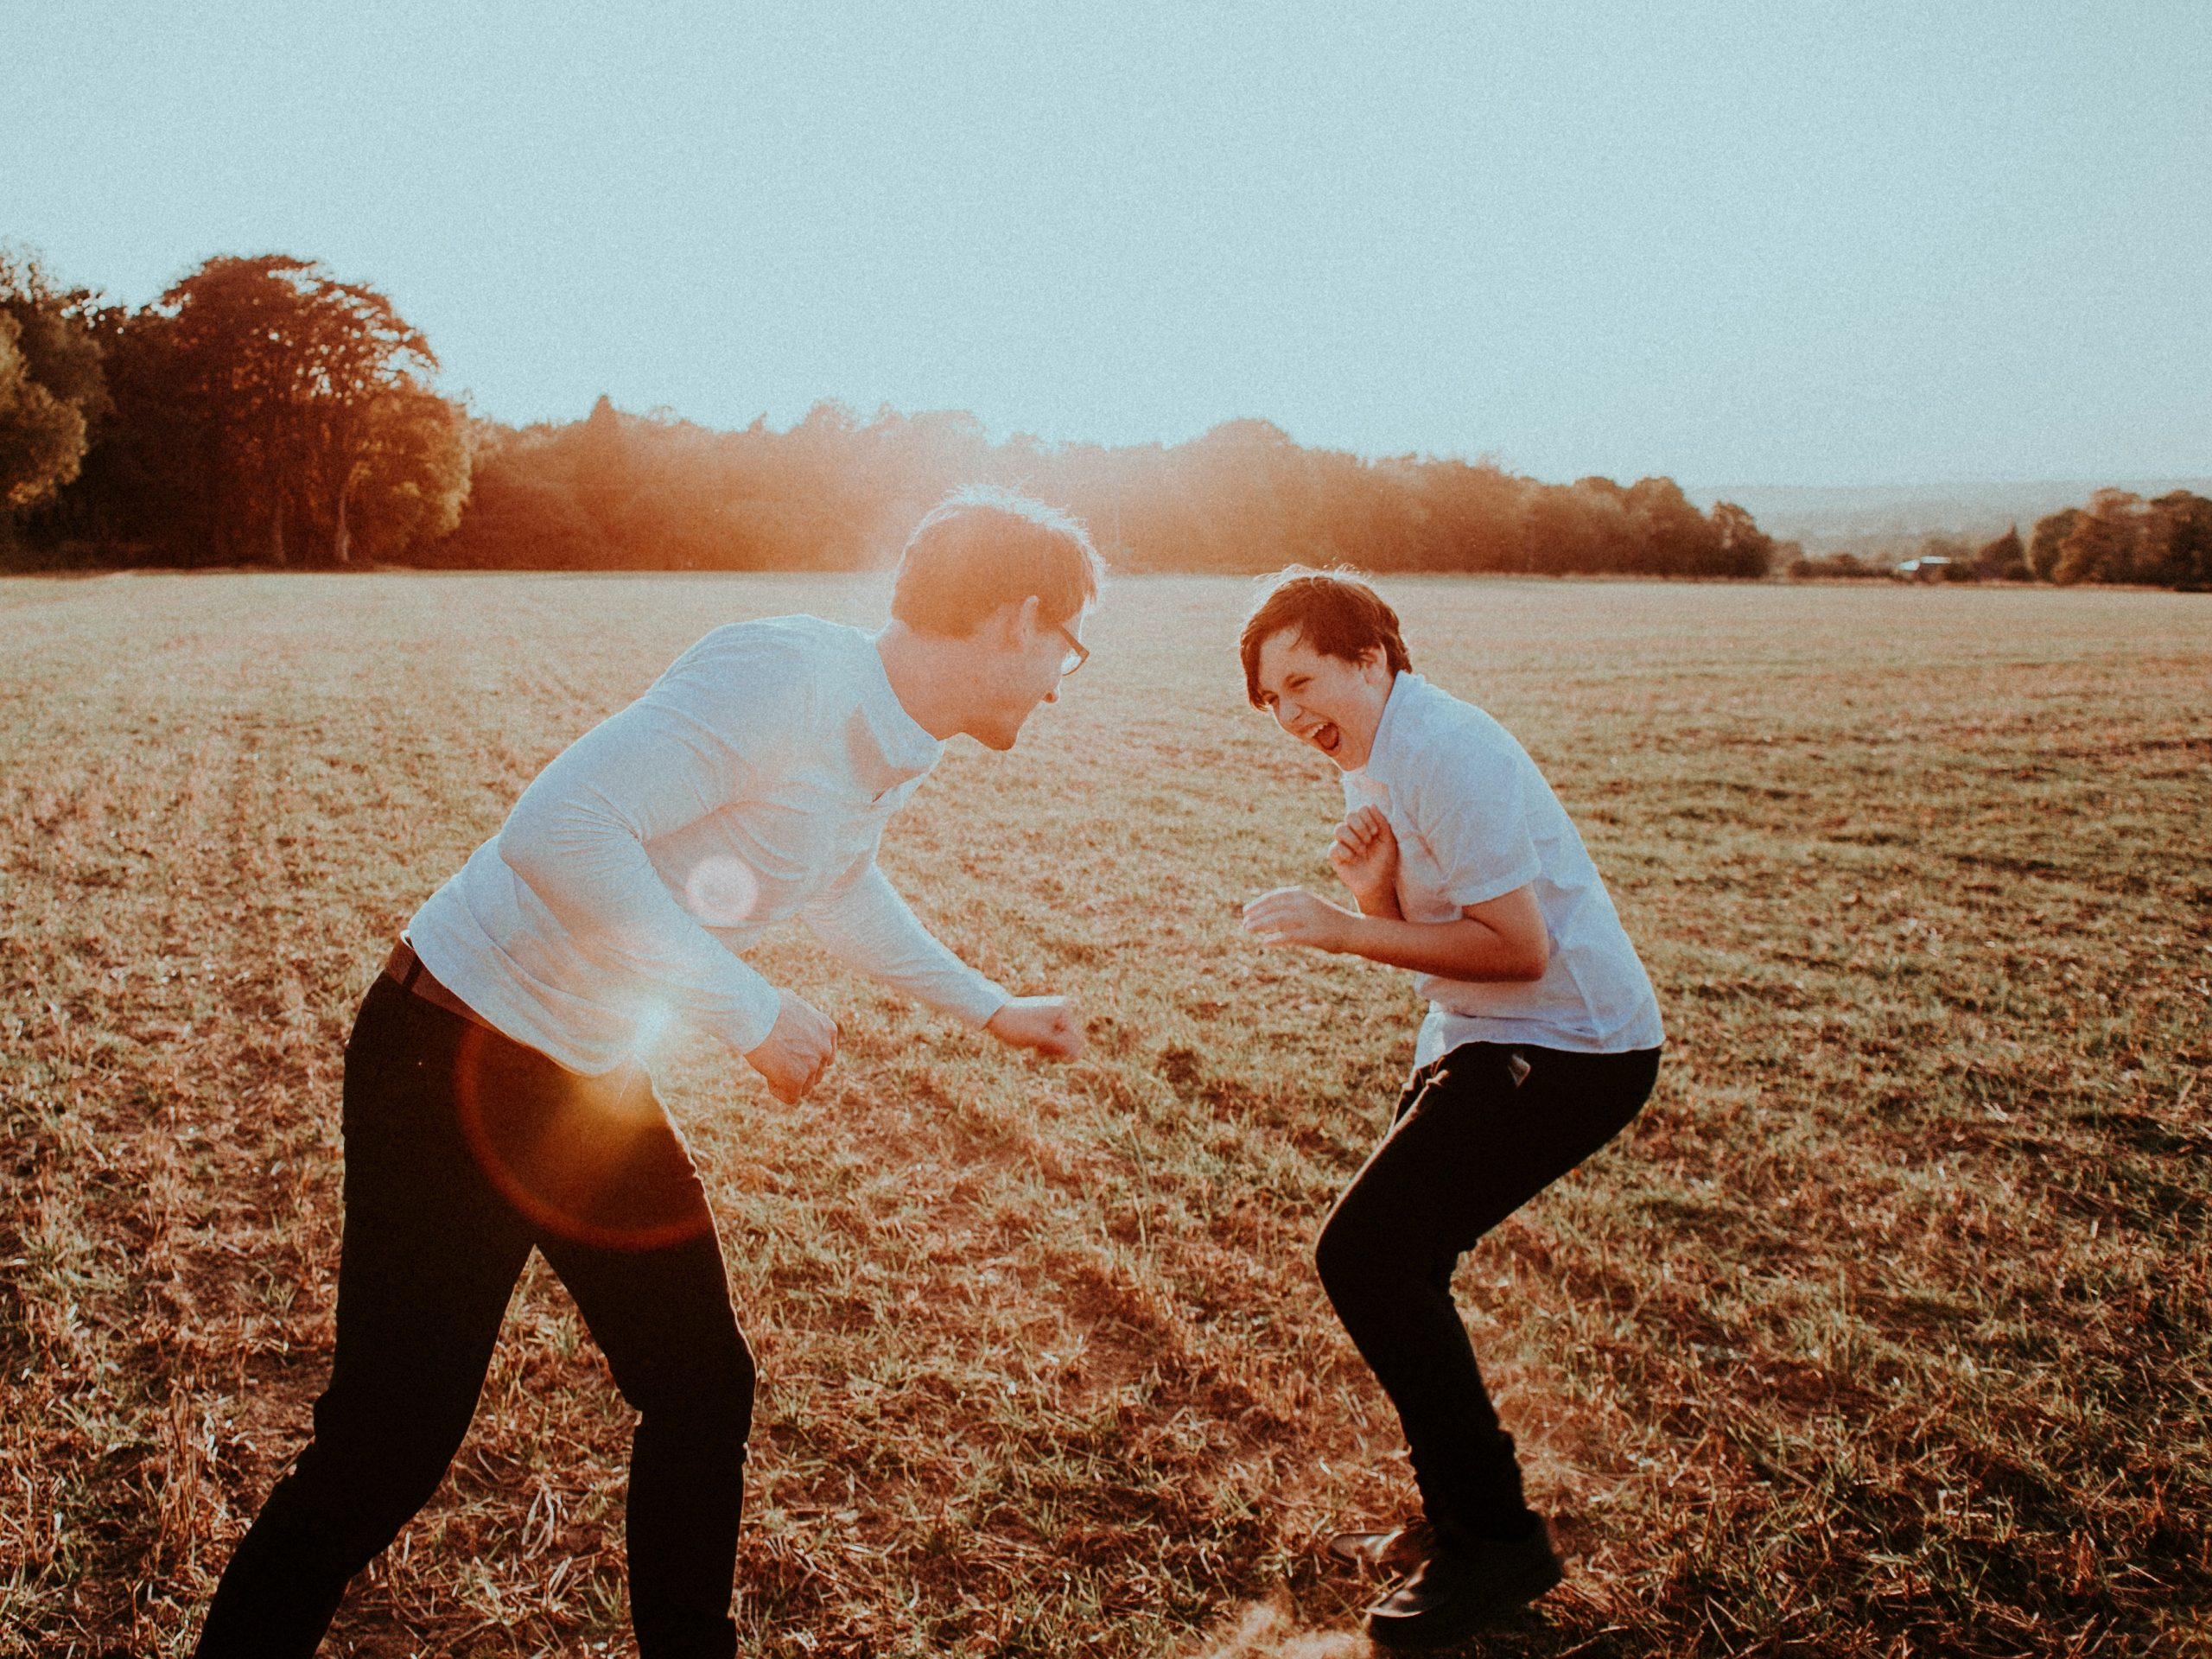 Photo of laughing Caucasian father and teenaged son playing around in an open grassy field representing one of one time spent together on the recommendation of their online anxiety therapist for teens in Illinois.